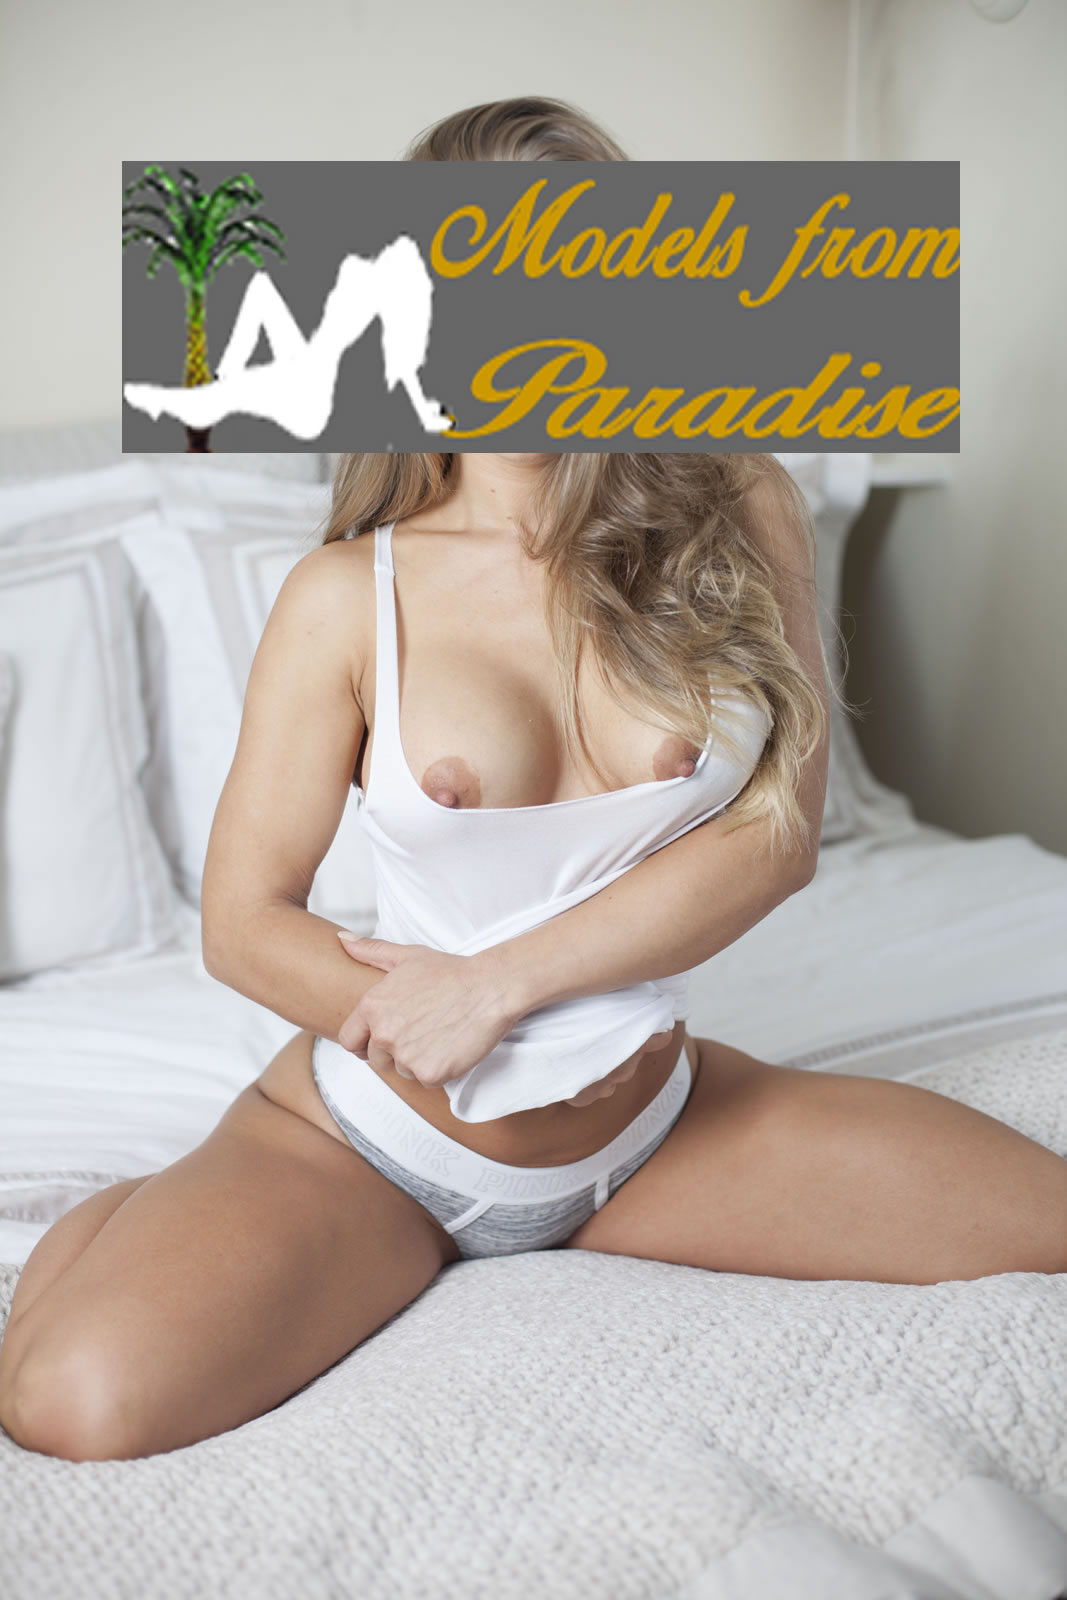 old young vip travel escorts